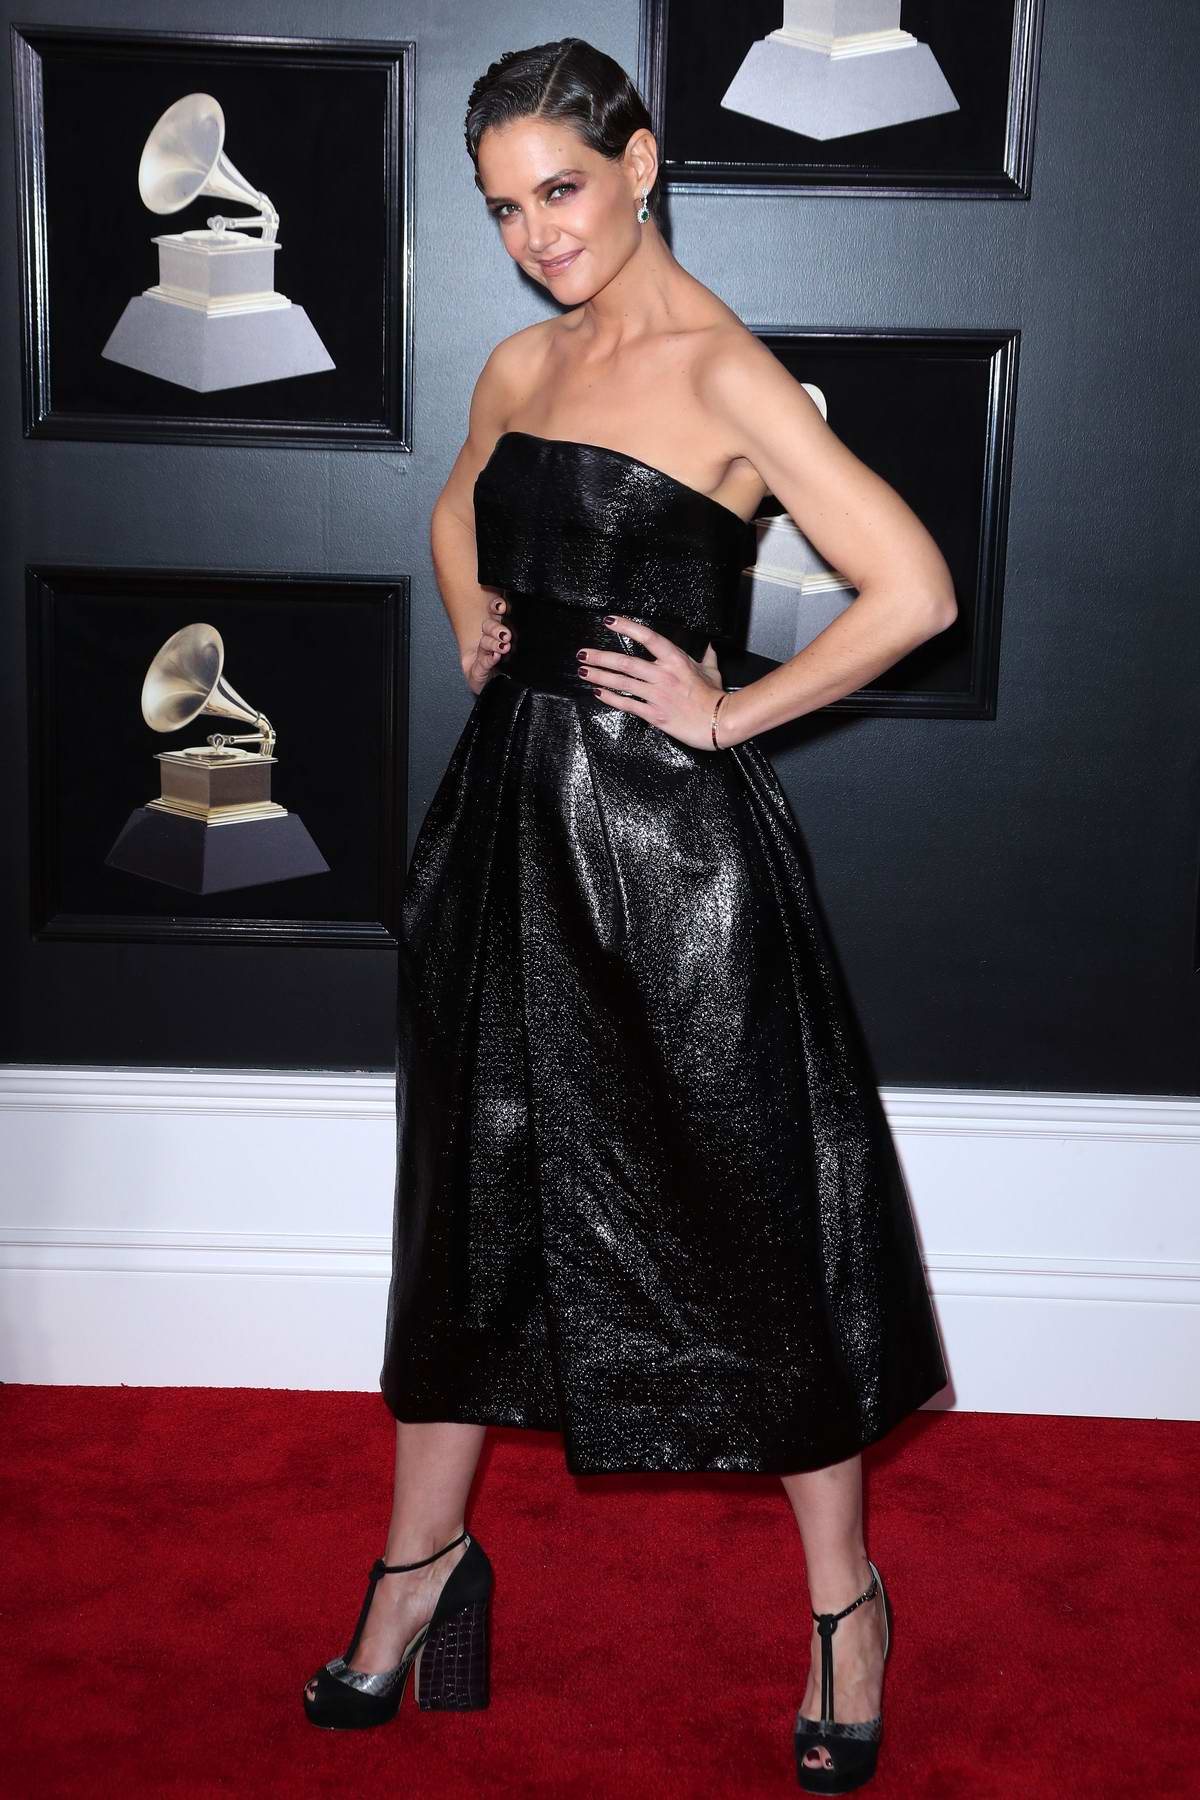 Katie Holmes attends the 60th Annual Grammy Awards at Madison Square Garden in New York